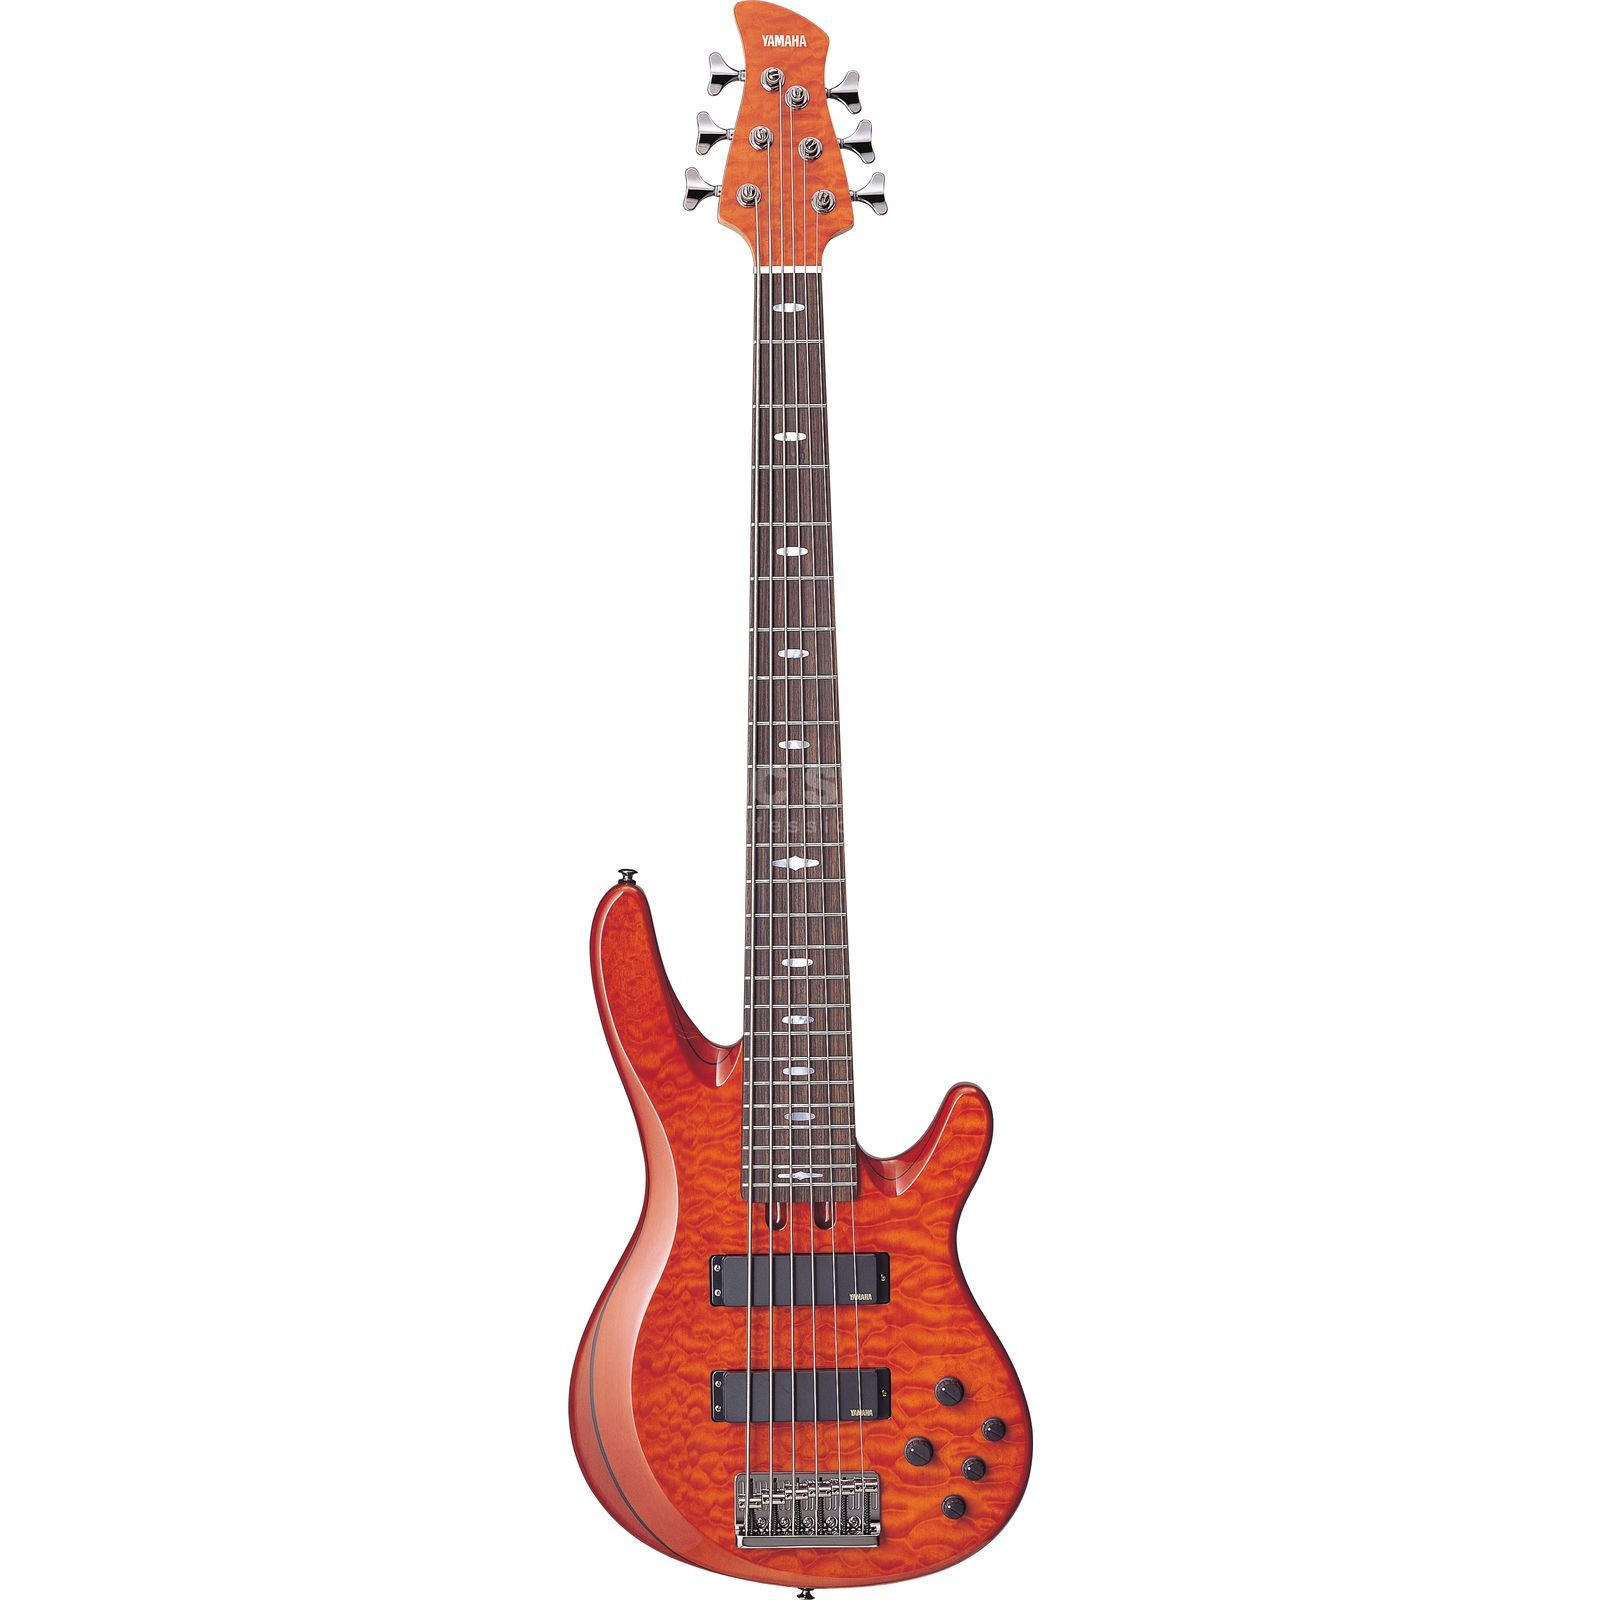 Yamaha TRB1006J 6-String Bass Guitar,  Caramel Brown   Product Image